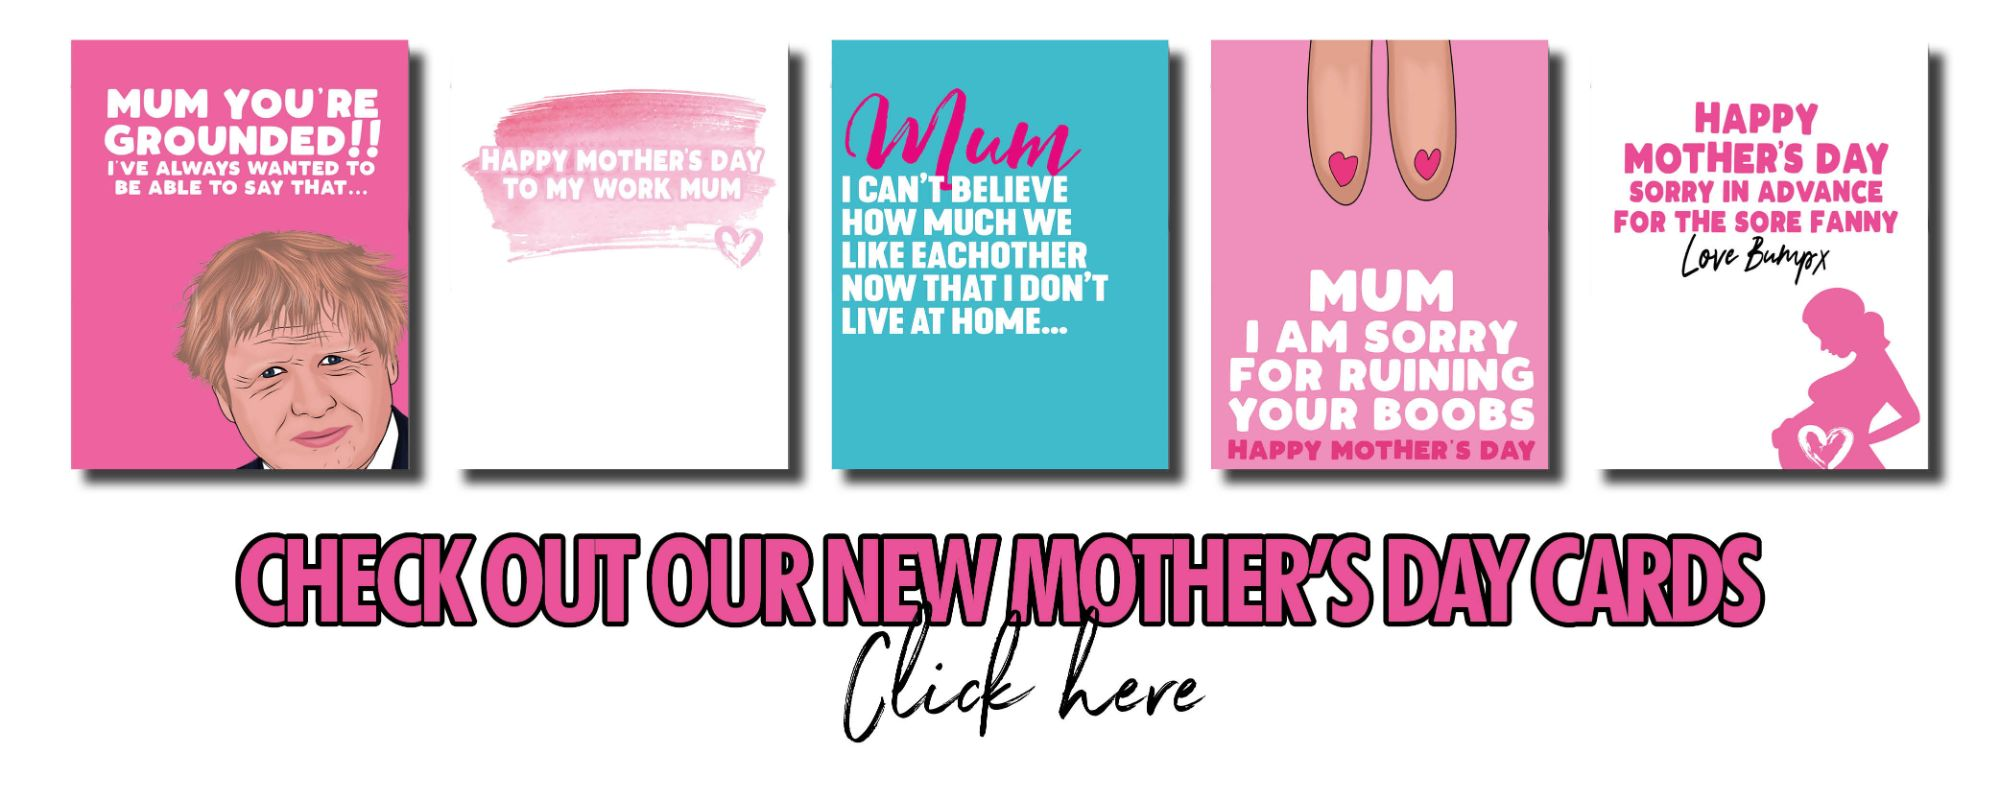 MOTHER'S DAY 2021 BANNER